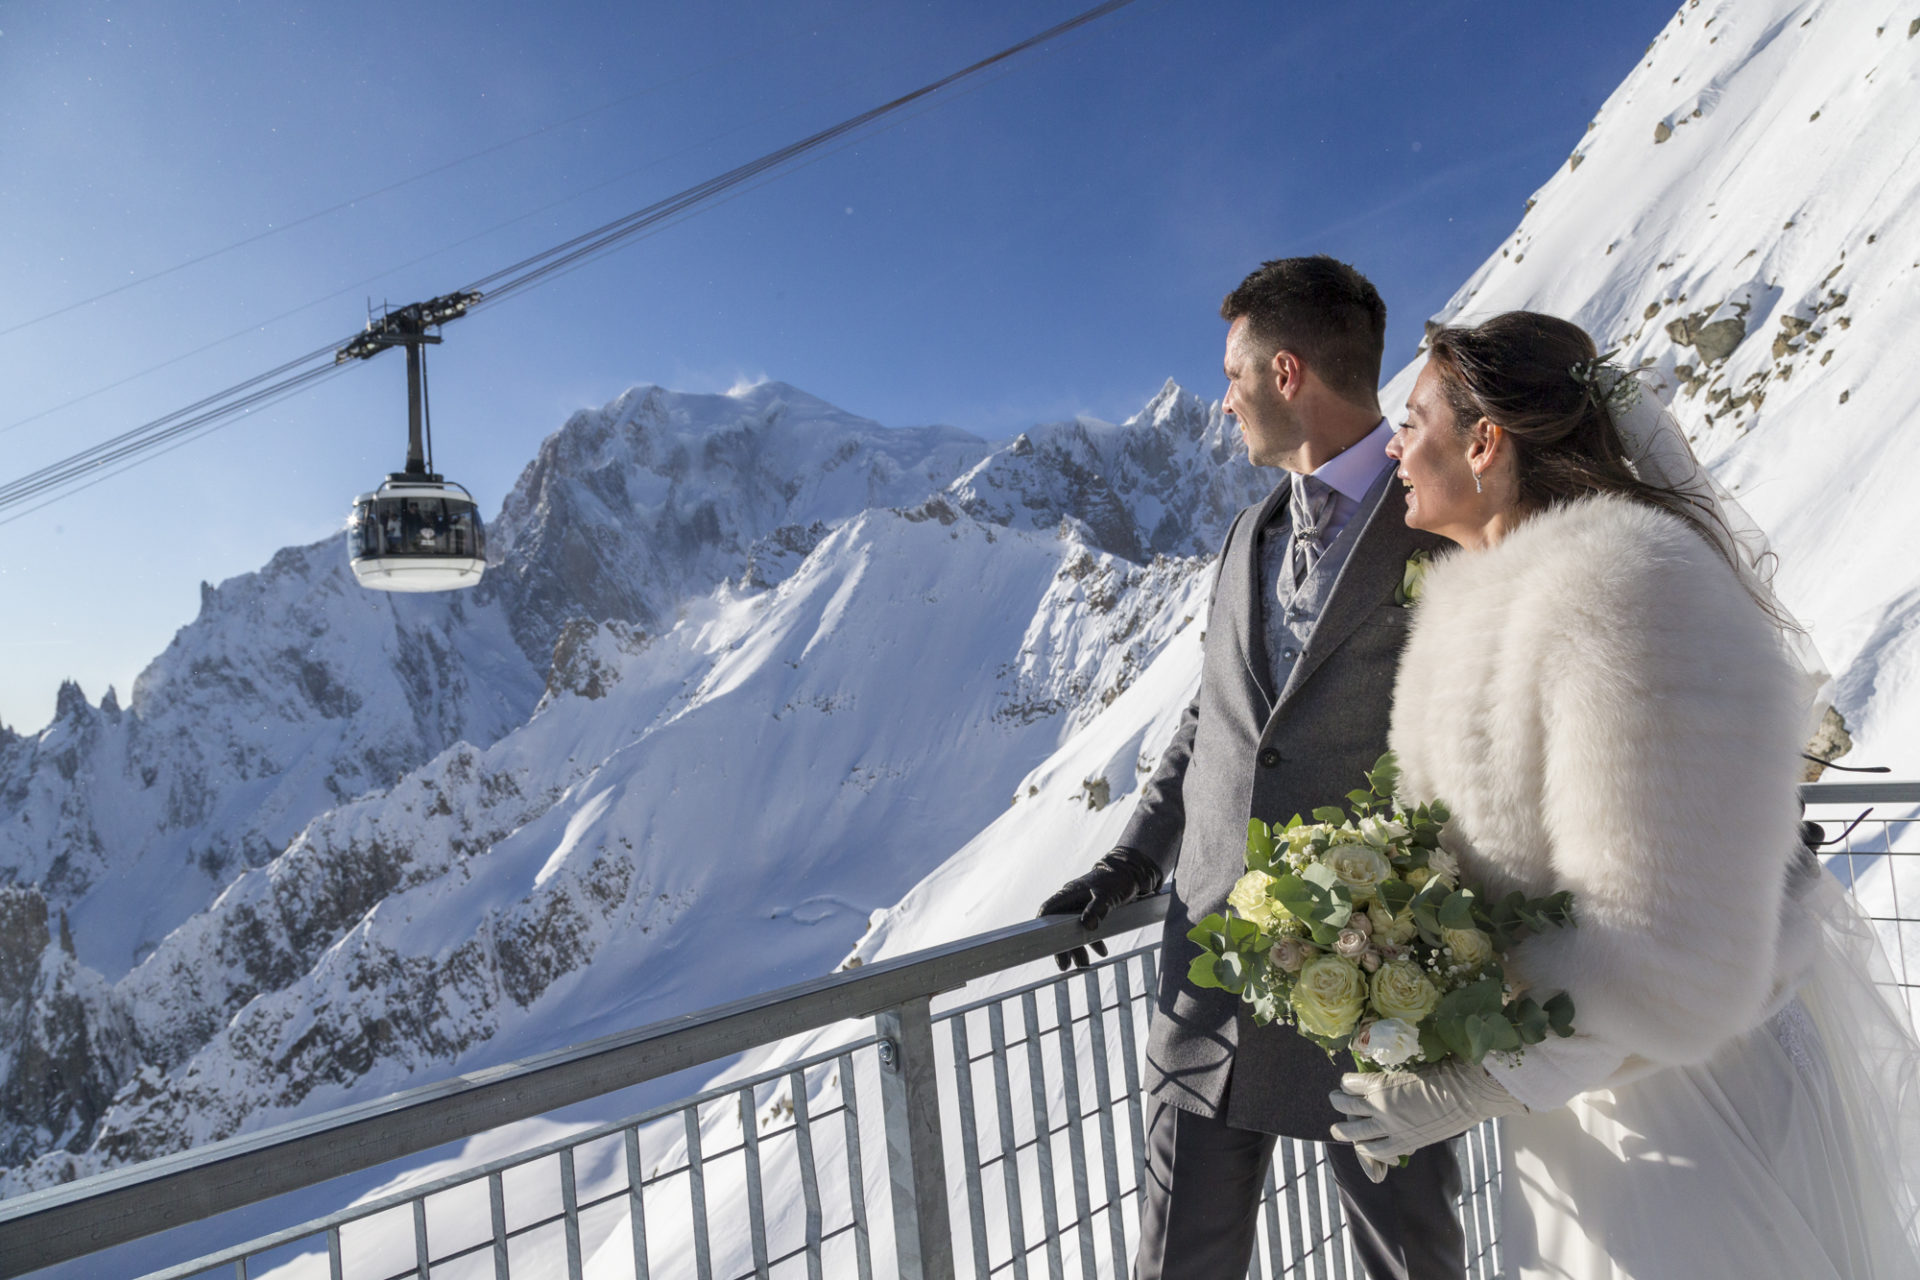 Matrimonio SkyWay Monte Bianco 66